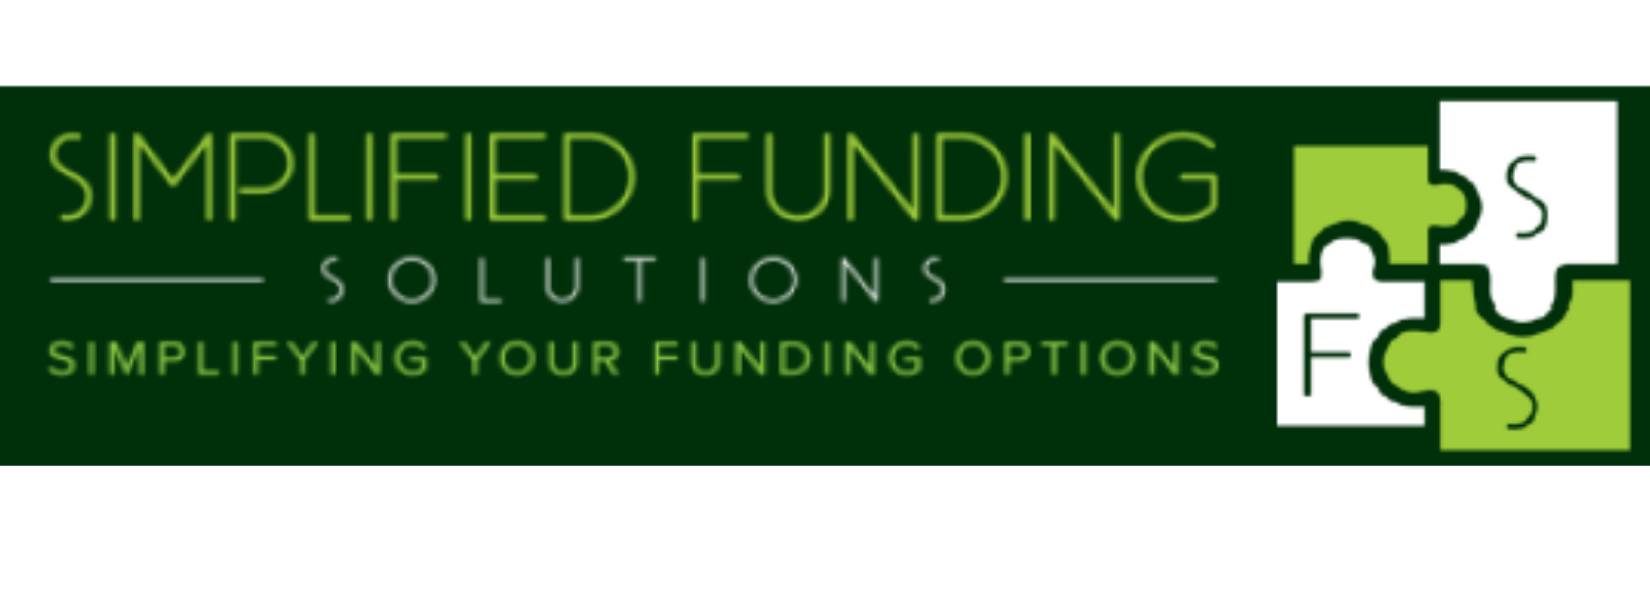 Simplified Funding Solutions